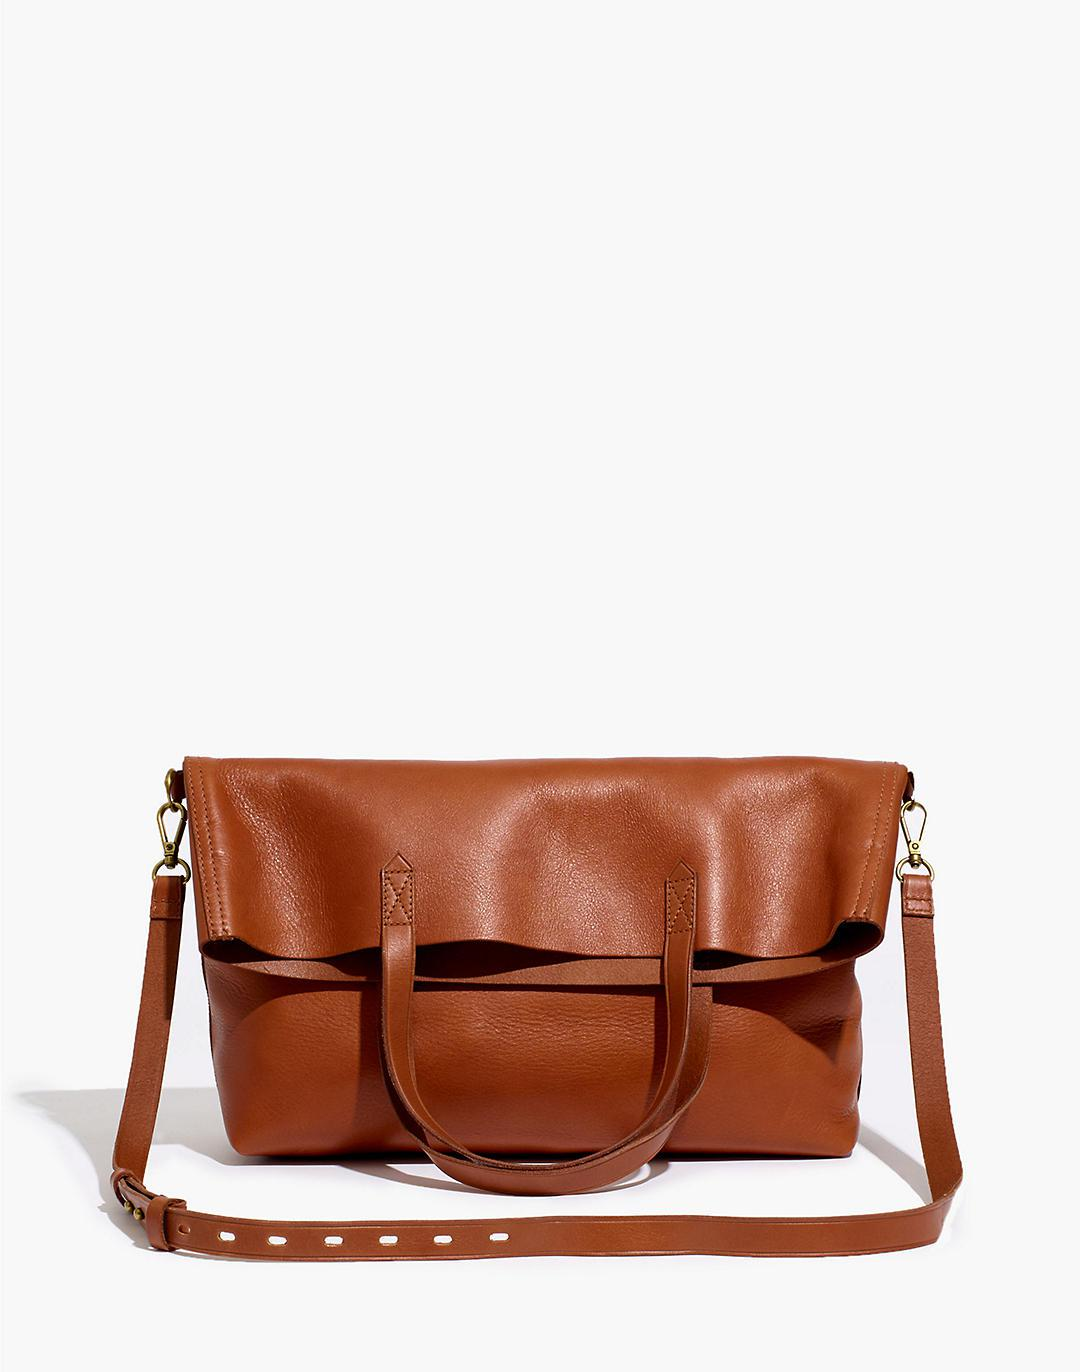 The Foldover Transport Tote